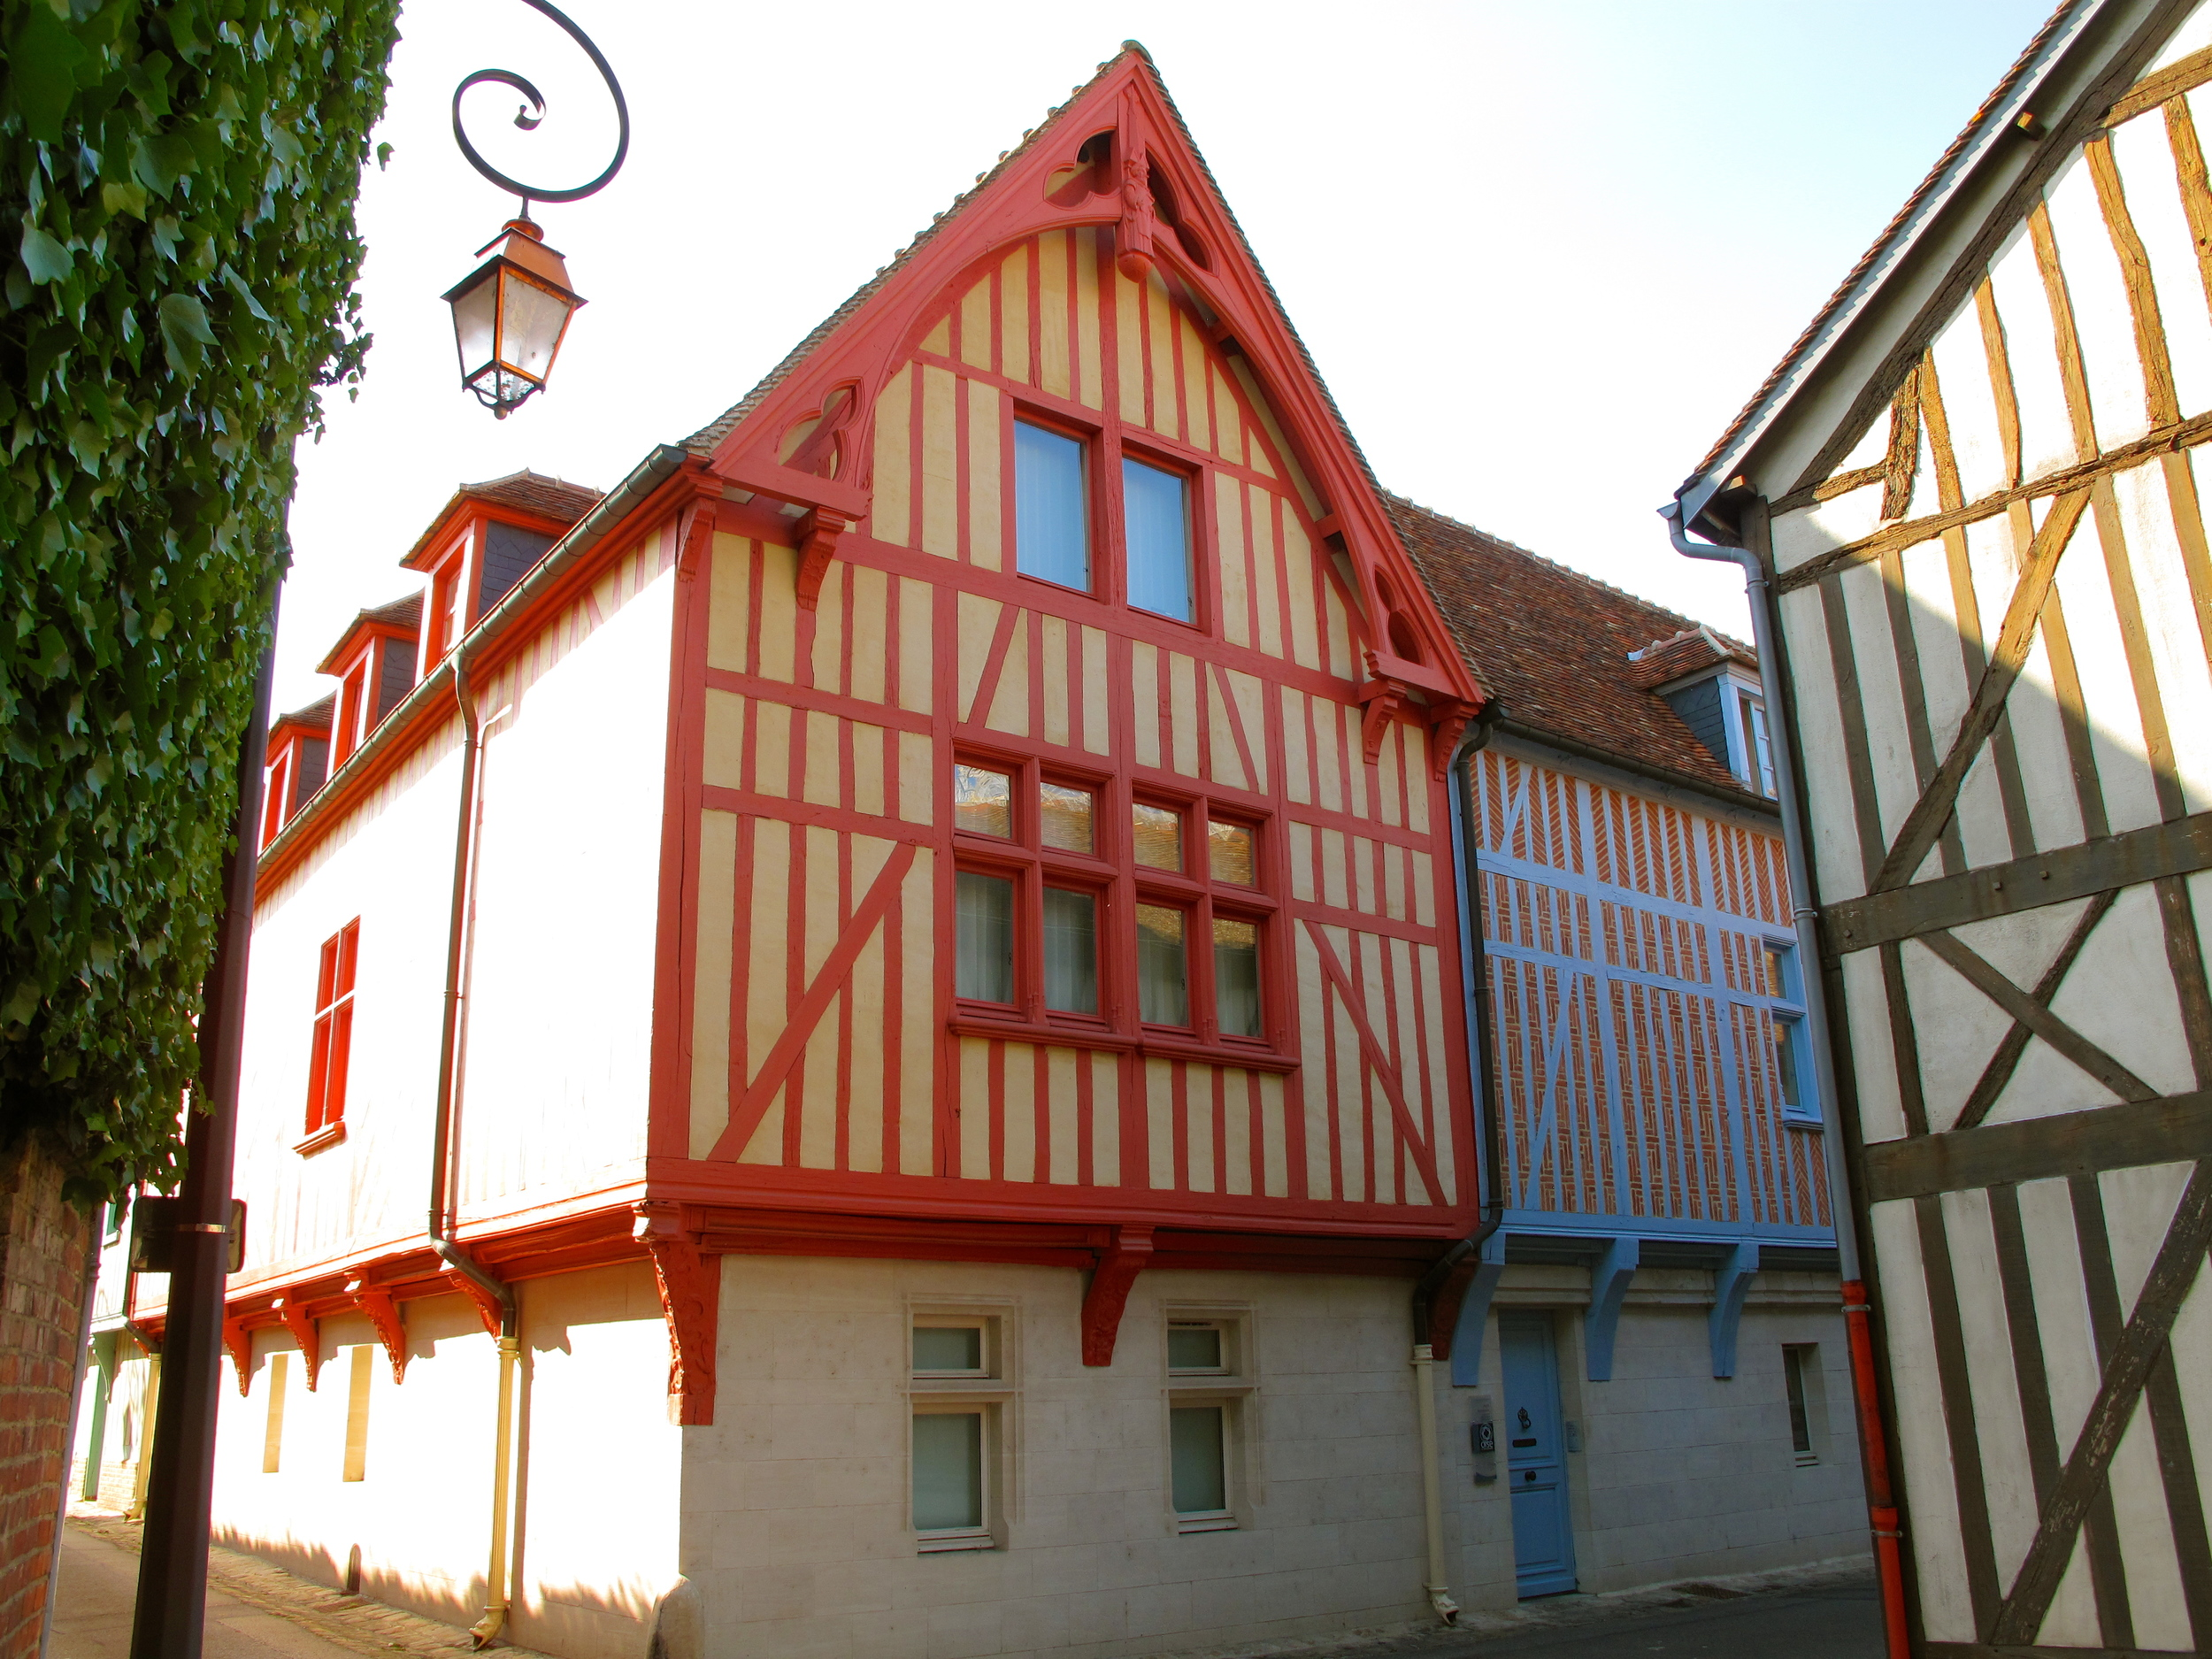 Beautiful old houses - timber frames painted in colours, in Beauvais, France